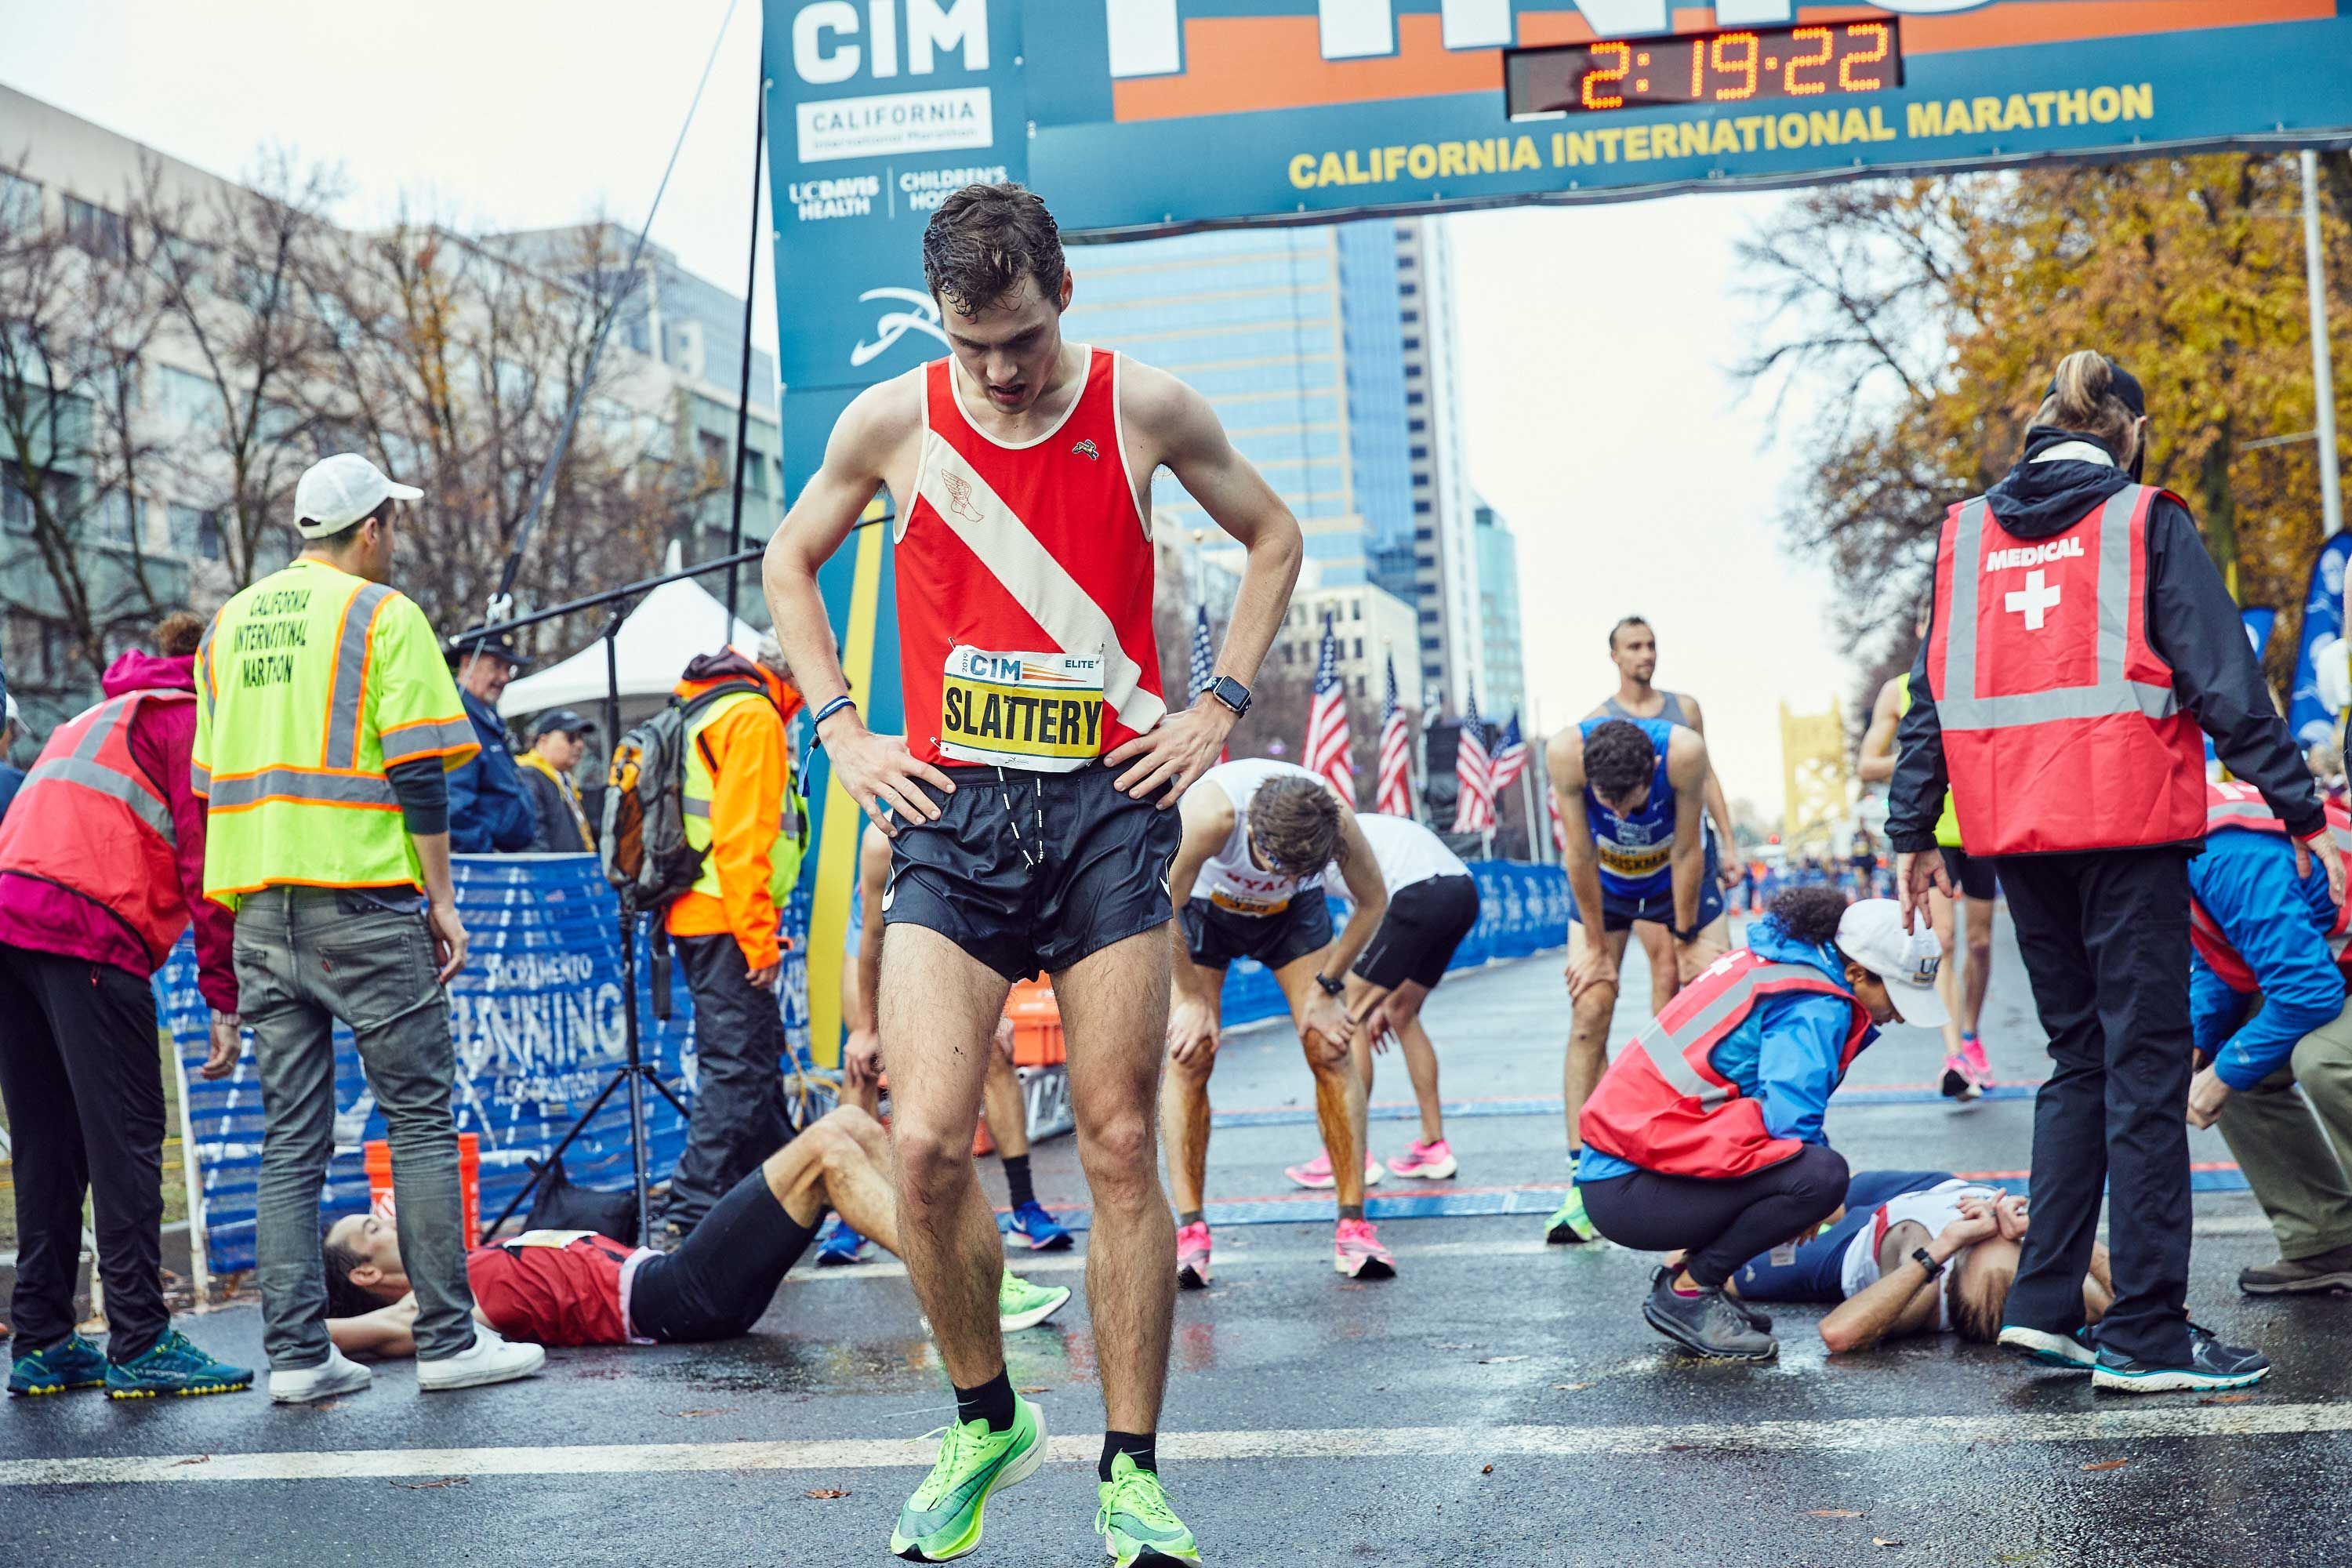 Scenes of Runners Qualifying for the Olympic Marathon Trials